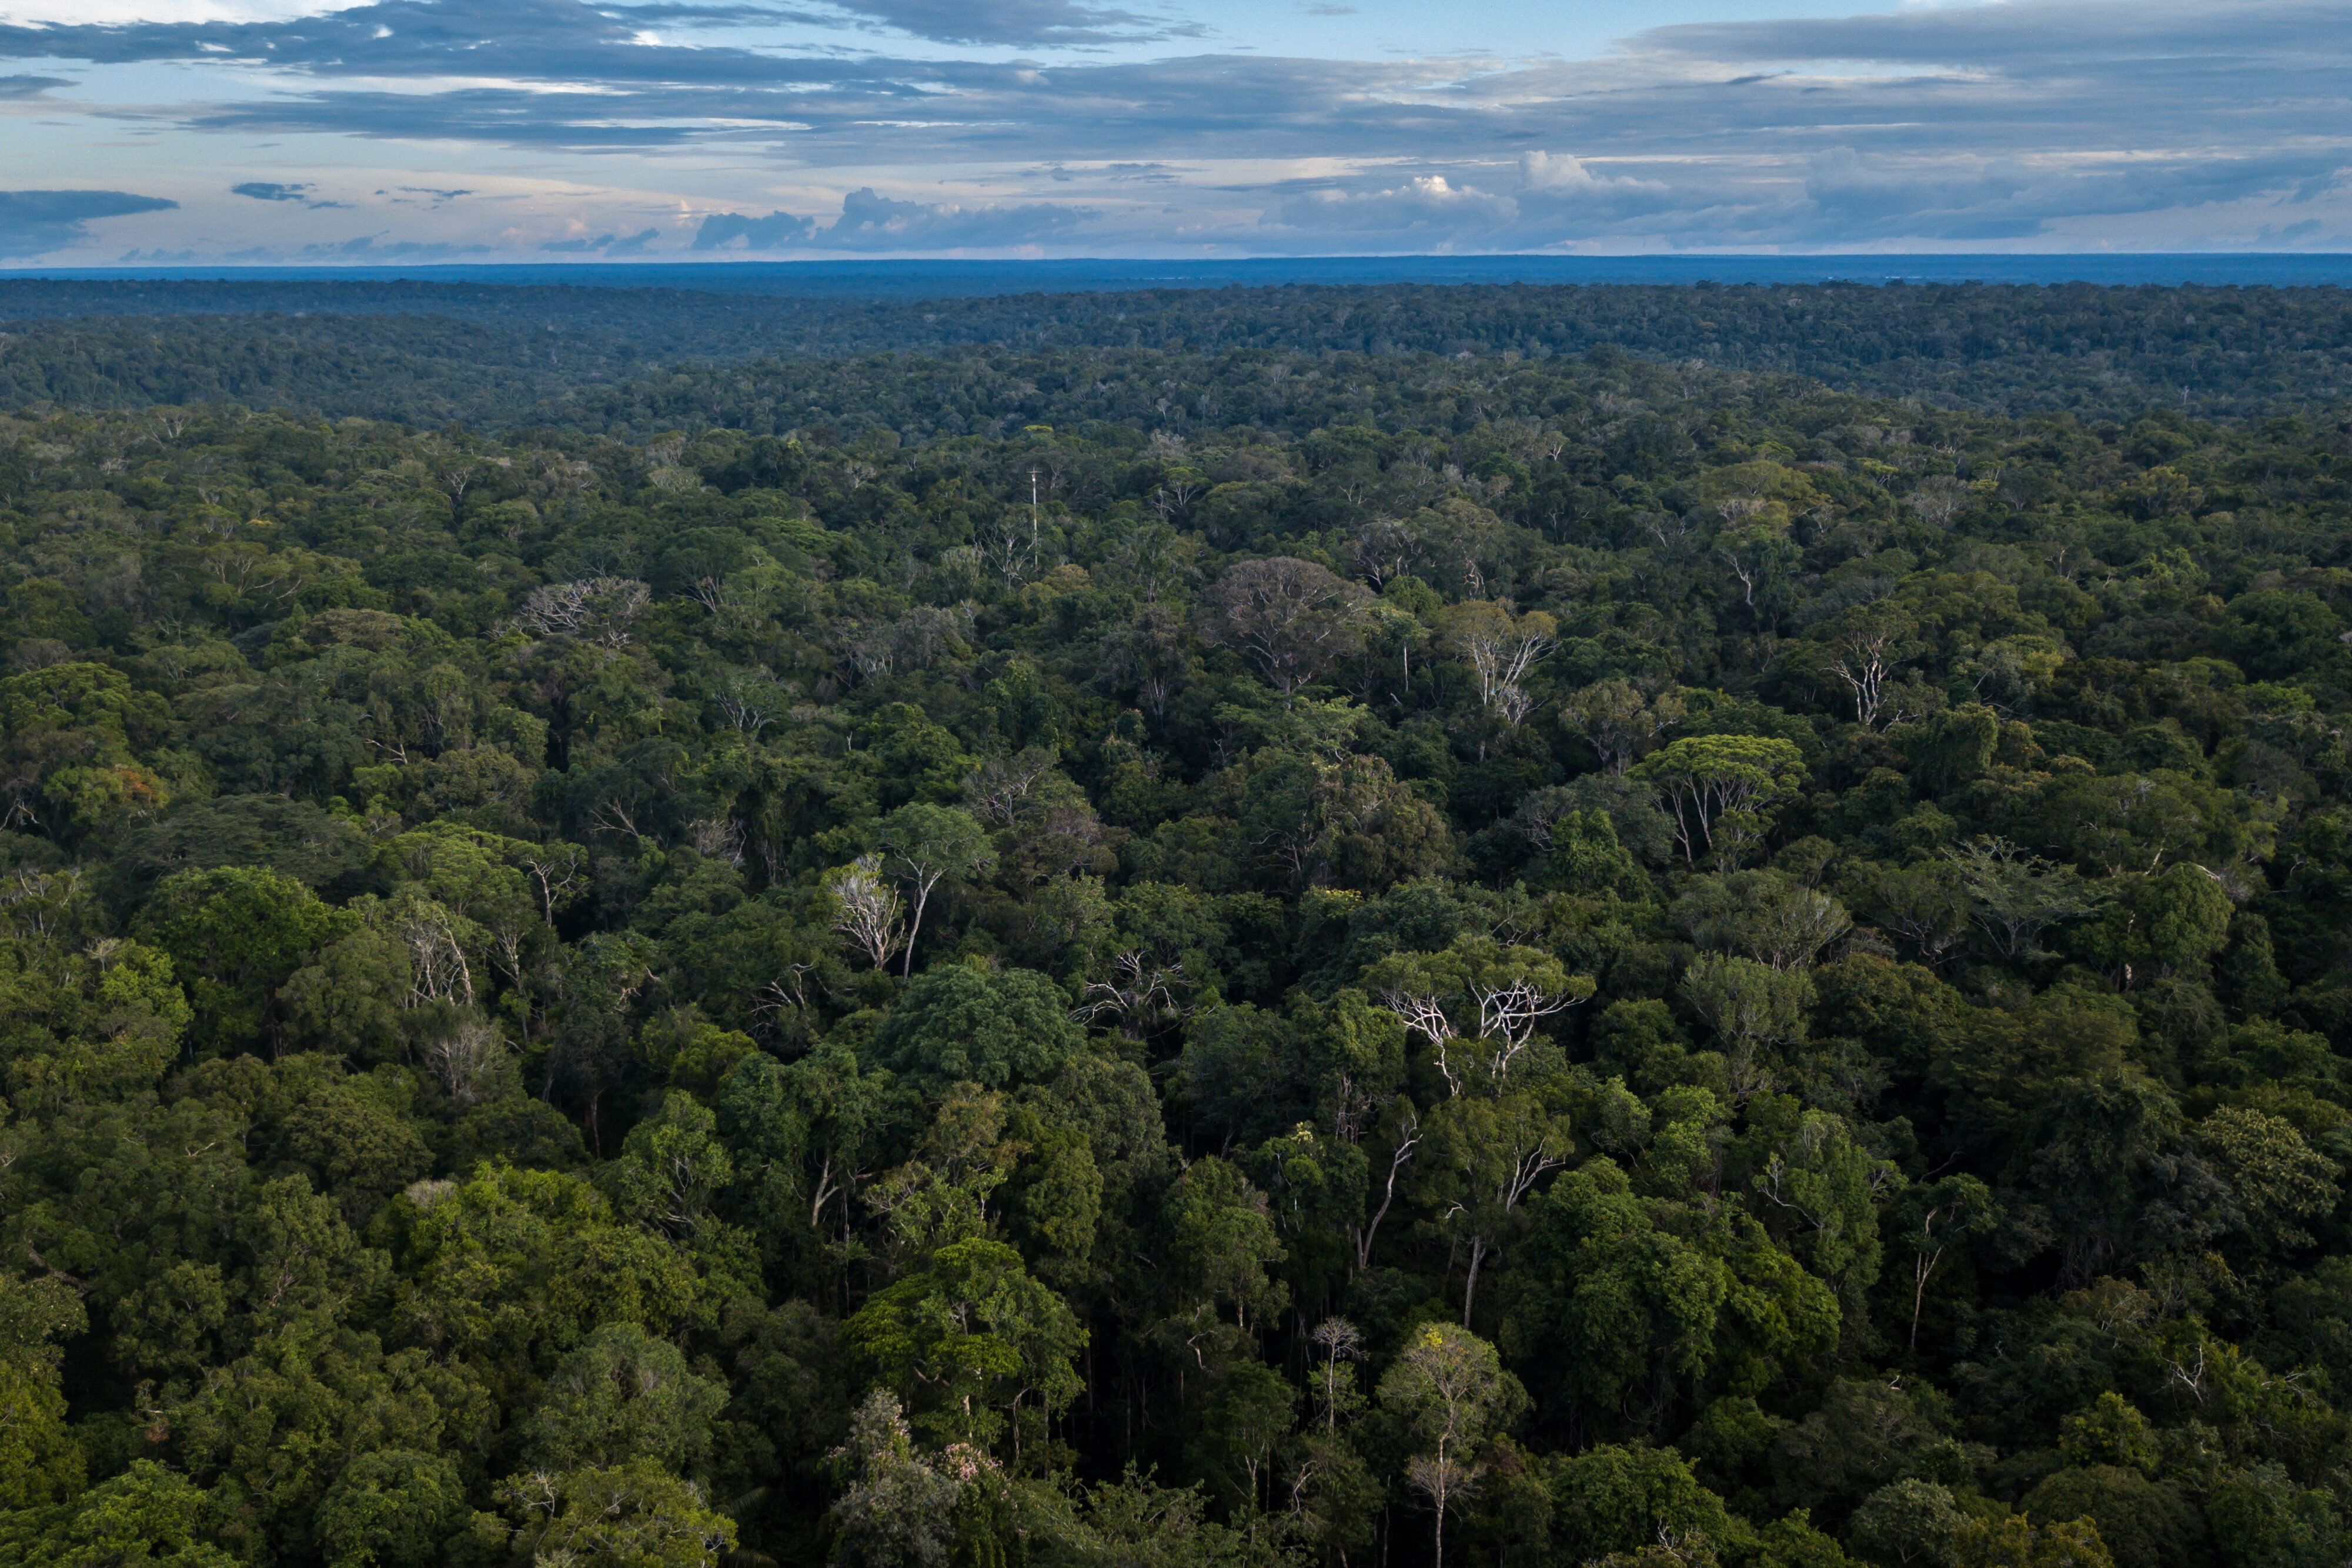 Amazon rainforest stands in this aerial photograph taken near Presidente Figueiredo, Amazonas state, Brazil, on Sunday, Feb. 3, 2019. Part of President Jair Bolsonaro's electoral appeal rested on a business-friendly pledge to rein in an overbearing state by dismantling environmental agencies, but those promises swiftly changed following the deadly Brumadinho dam break. Photographer: Dado Galdieri/Bloomberg via Getty Images